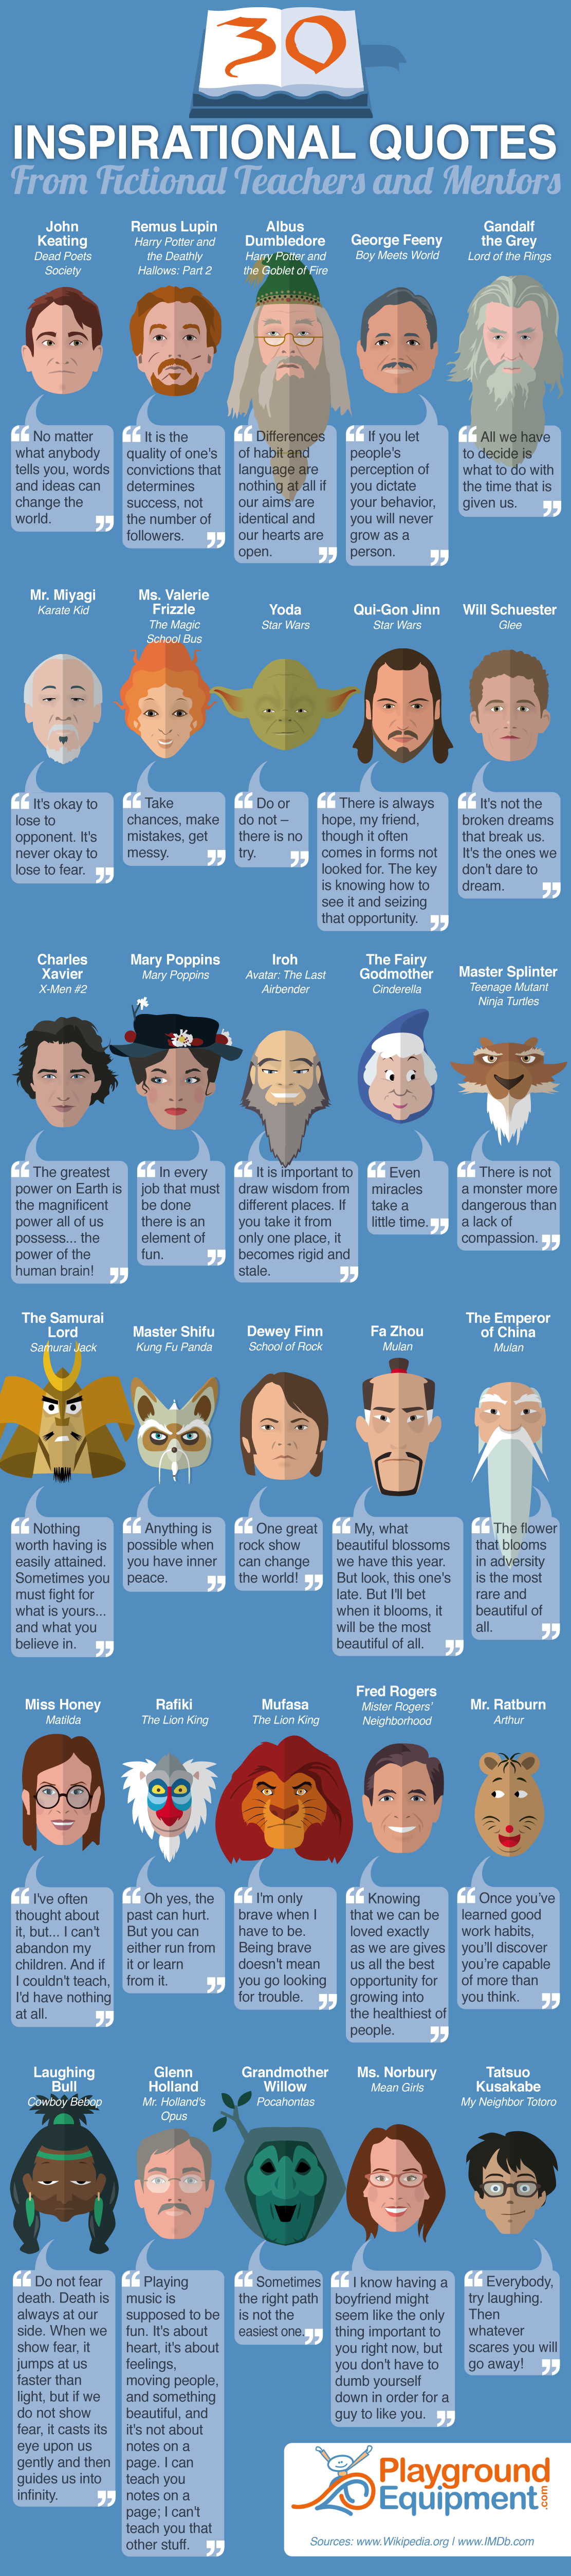 Infographic: Inspirational Quotes from Fictional Teachers/Mentors